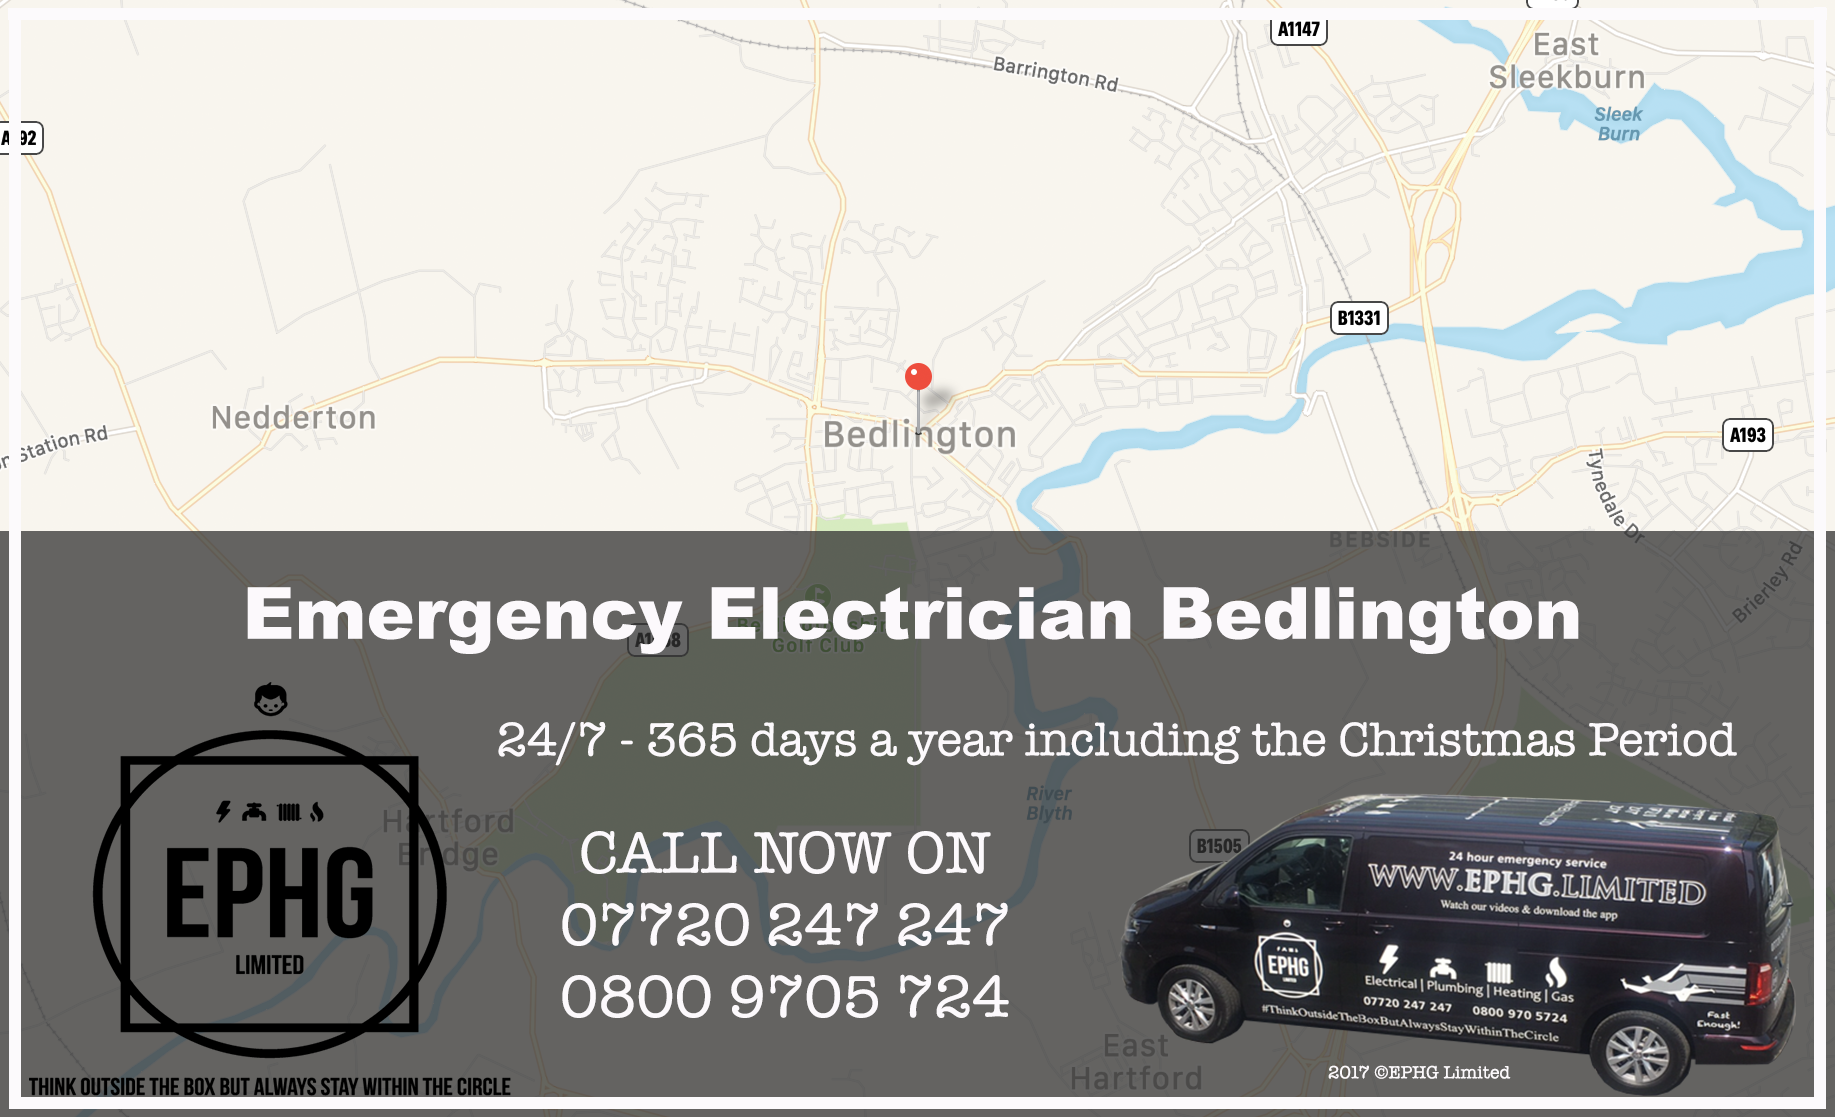 Emergency Electrician Bedlington